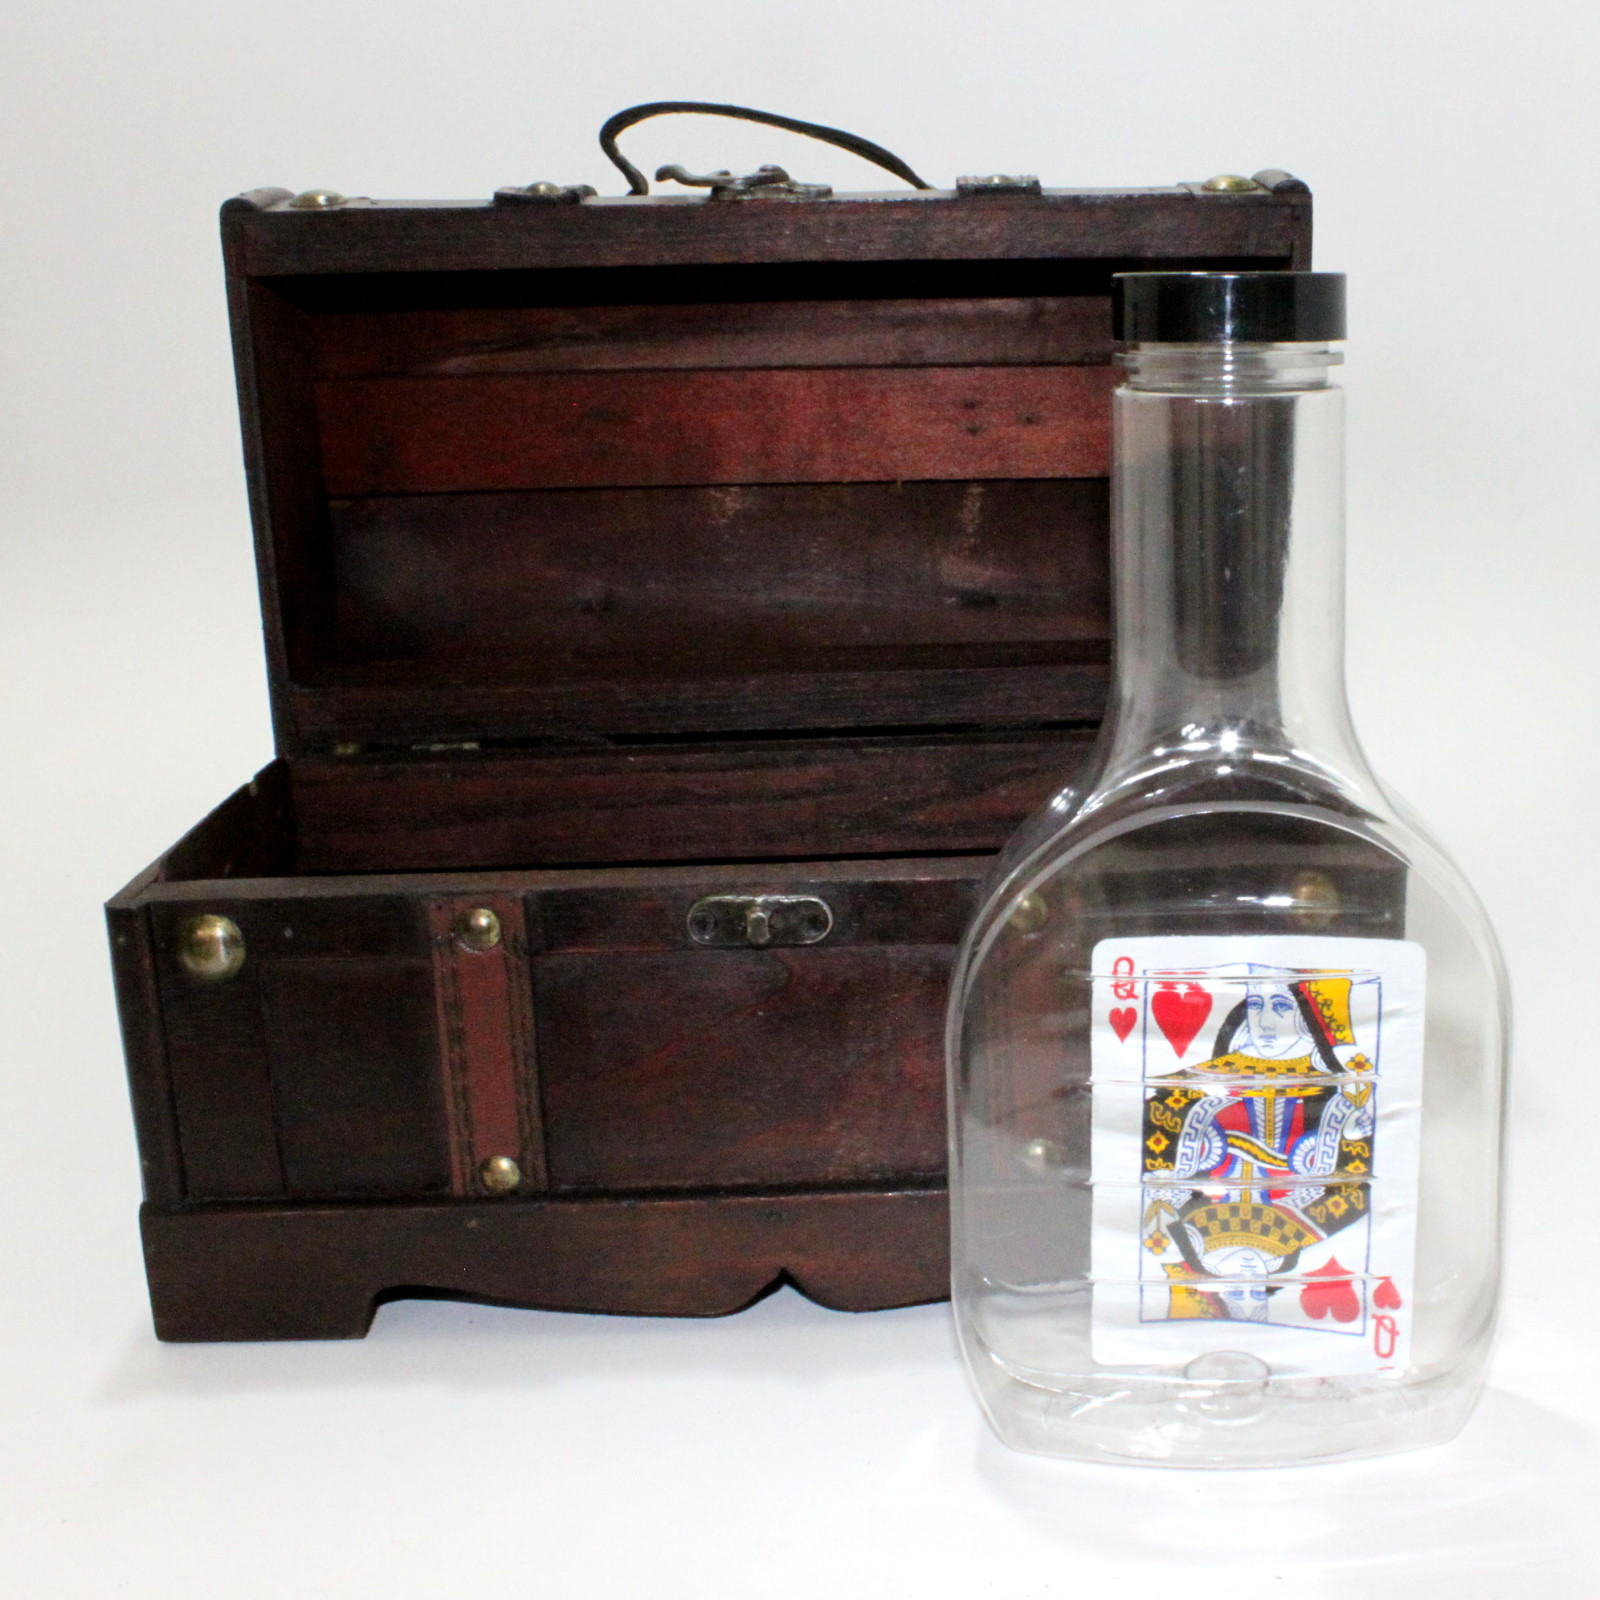 Card in Bottle Nested Boxes by Carroll Baker